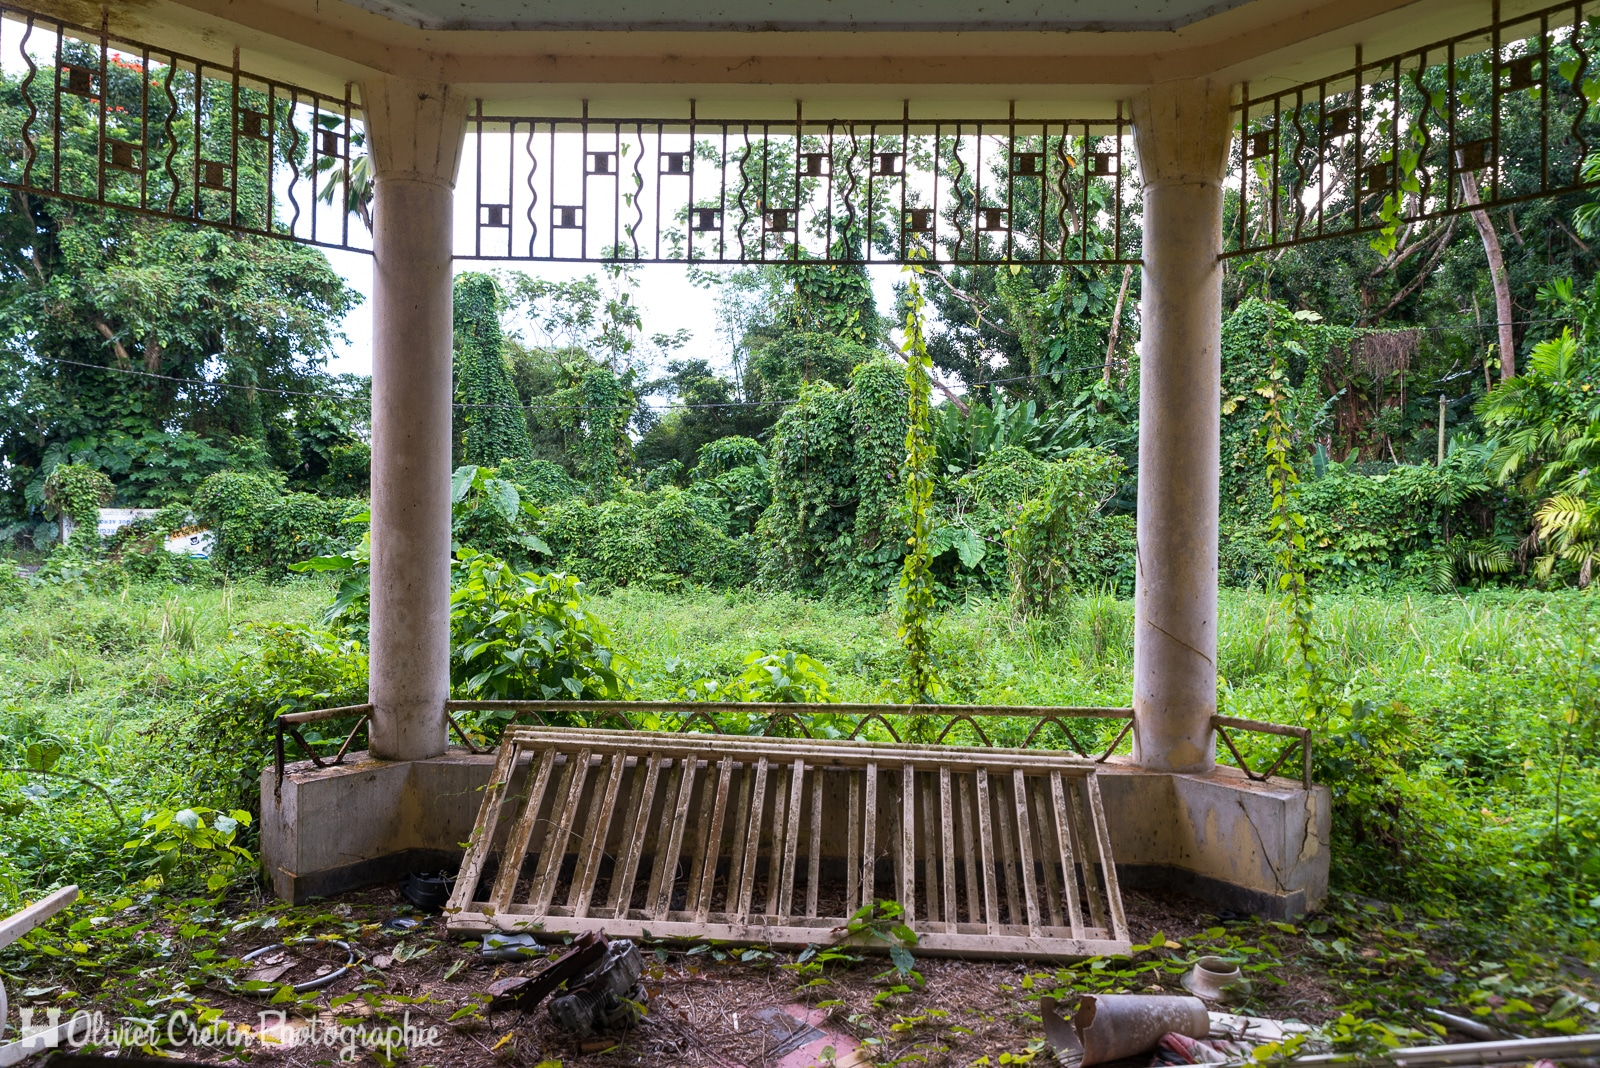 Guadeloupe - Urbex tropical